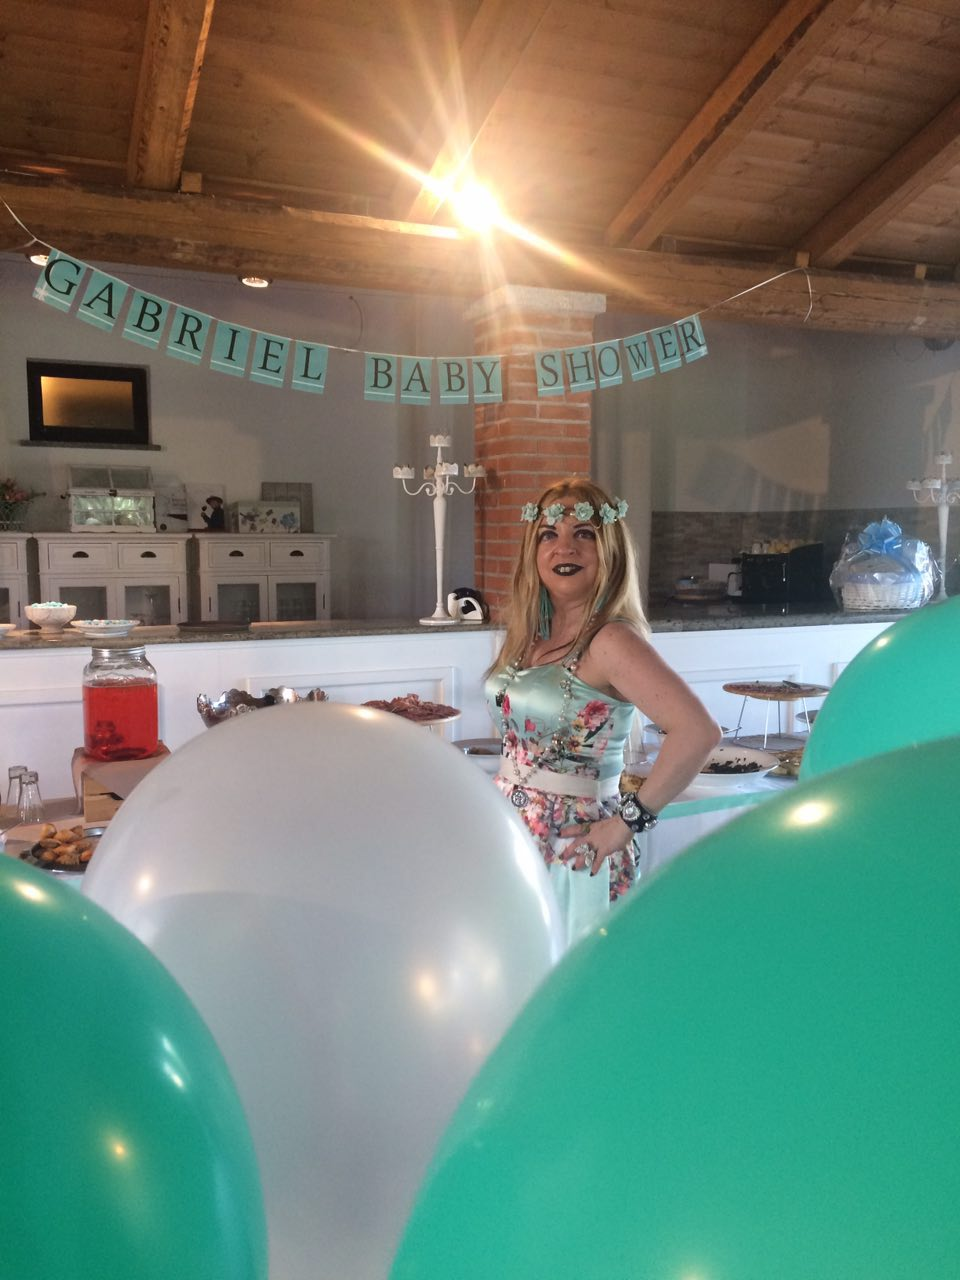 Baby Shower Party, mom, child, baby, pregnant, personal shopper, image consultant, Artist Image Management, Event, Made in Italy